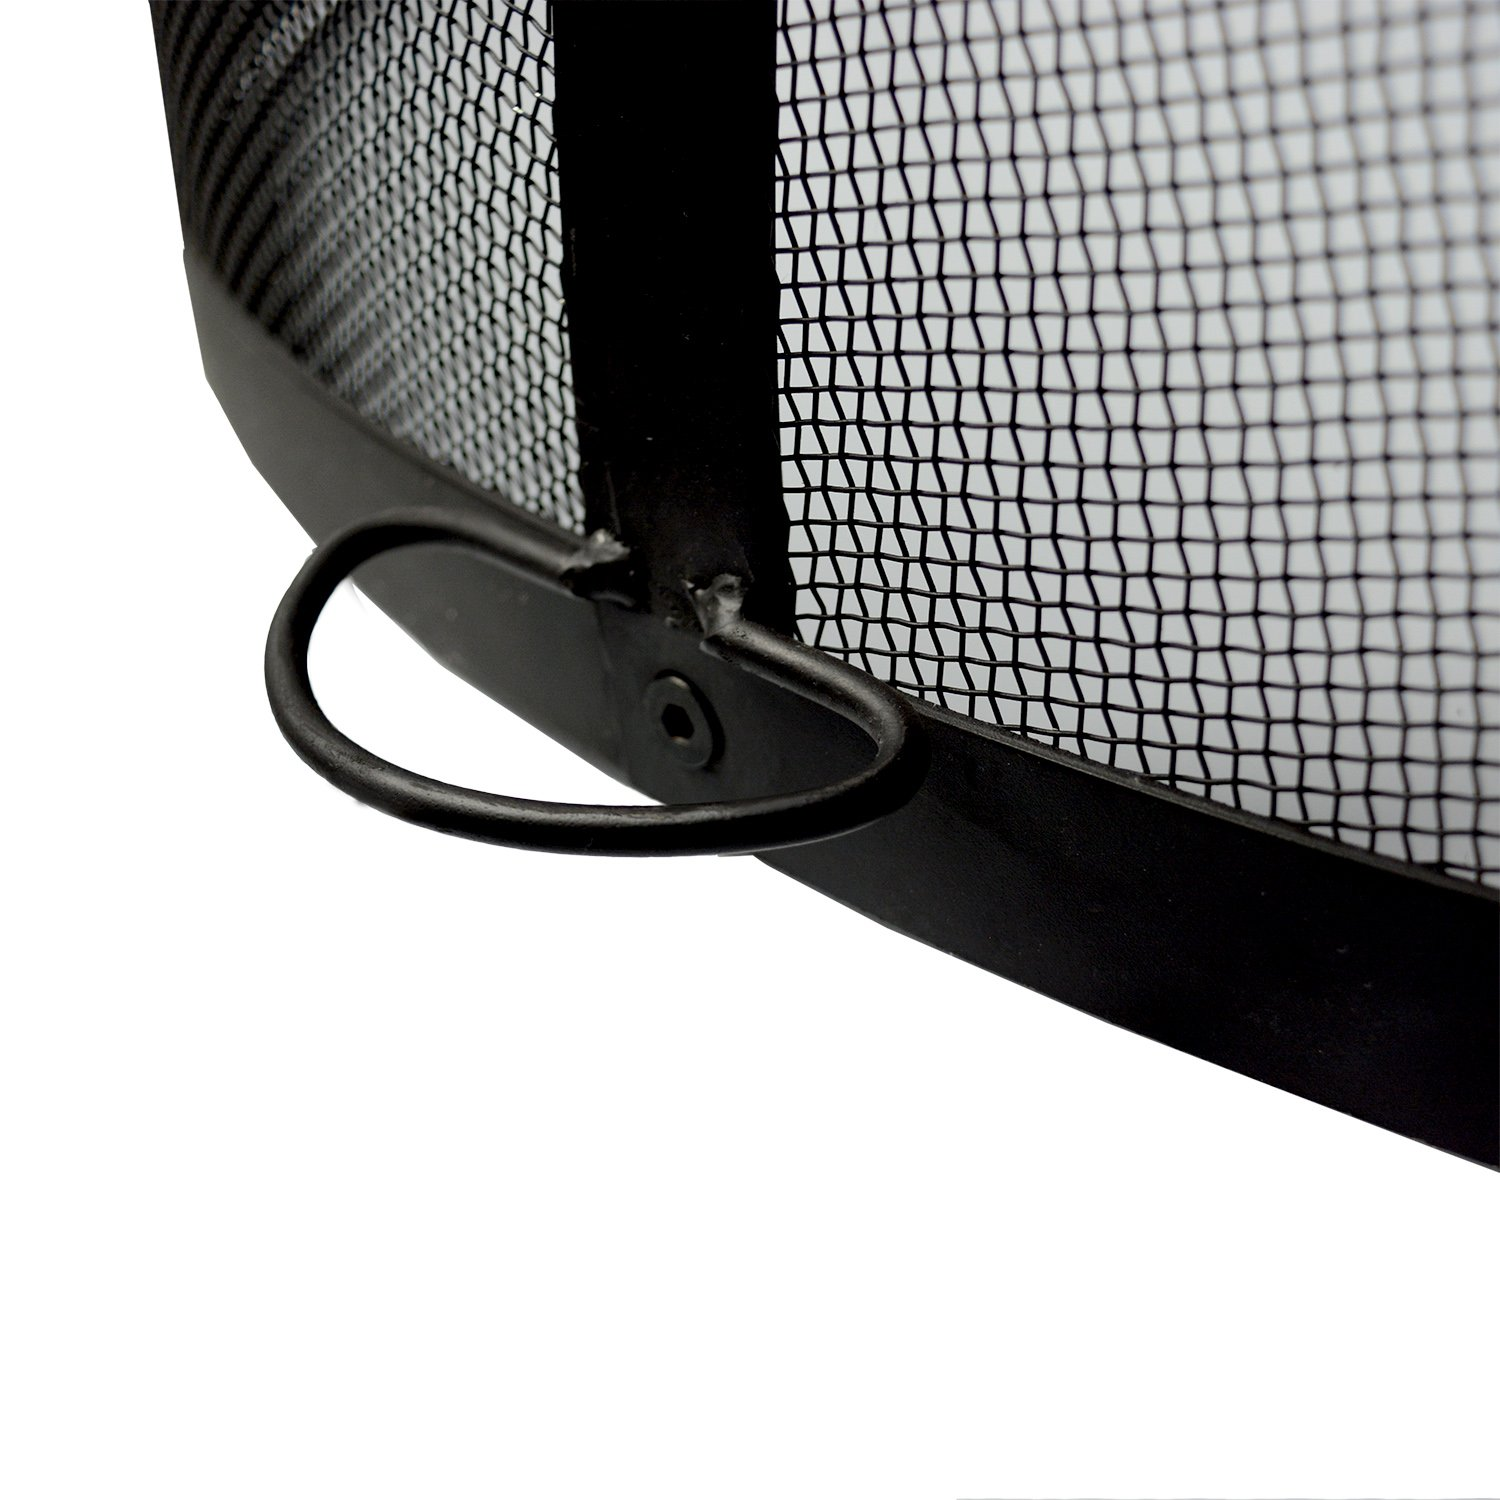 32-Inch Fire Pit Easy Access Spark Screen by Hampton's Buzaar (Image #6)